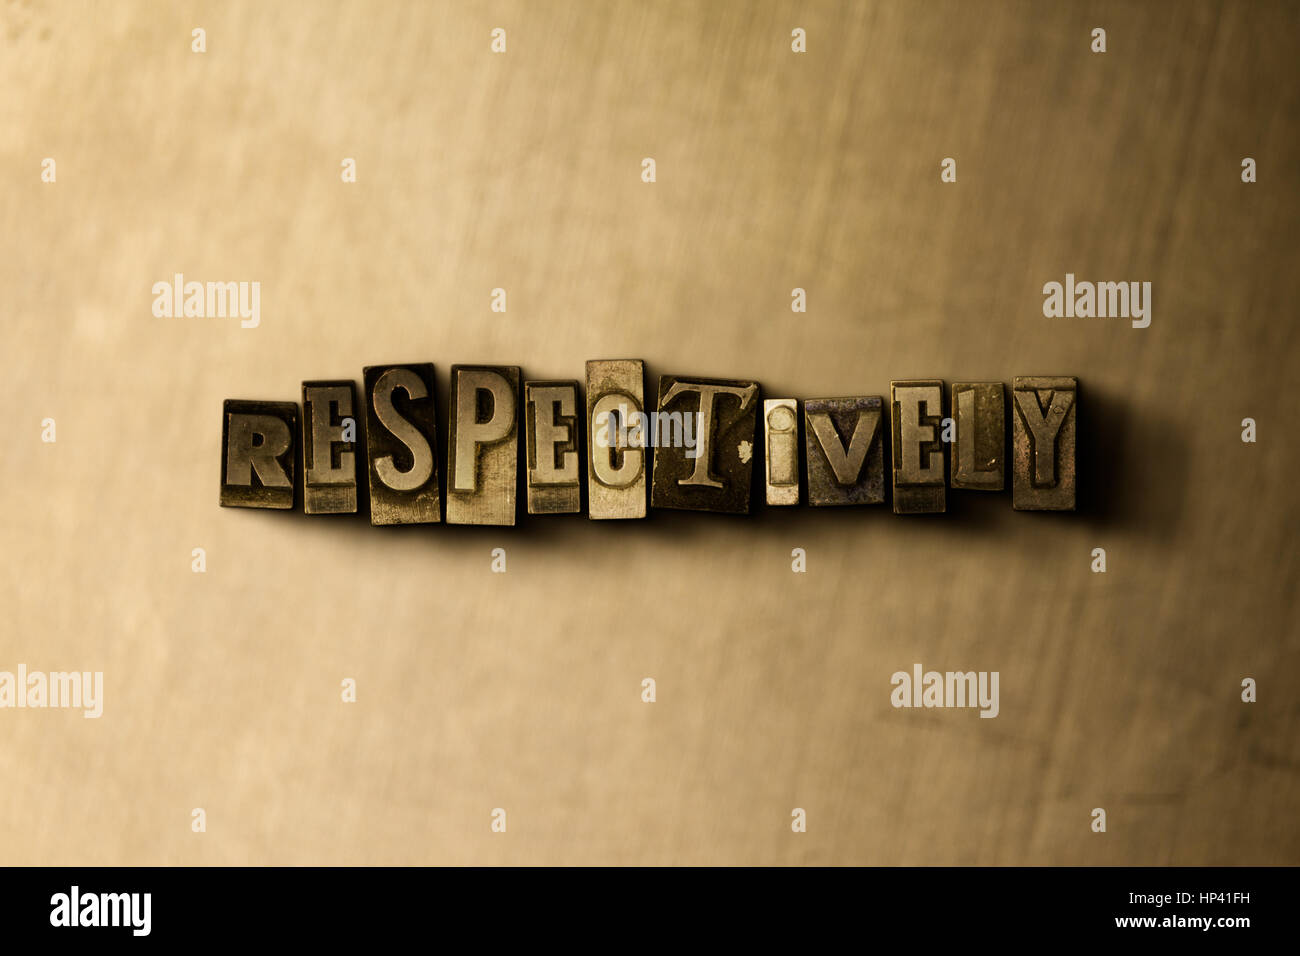 RESPECTIVELY - close-up of grungy vintage typeset word on metal backdrop. Royalty free stock illustration.  Can - Stock Image